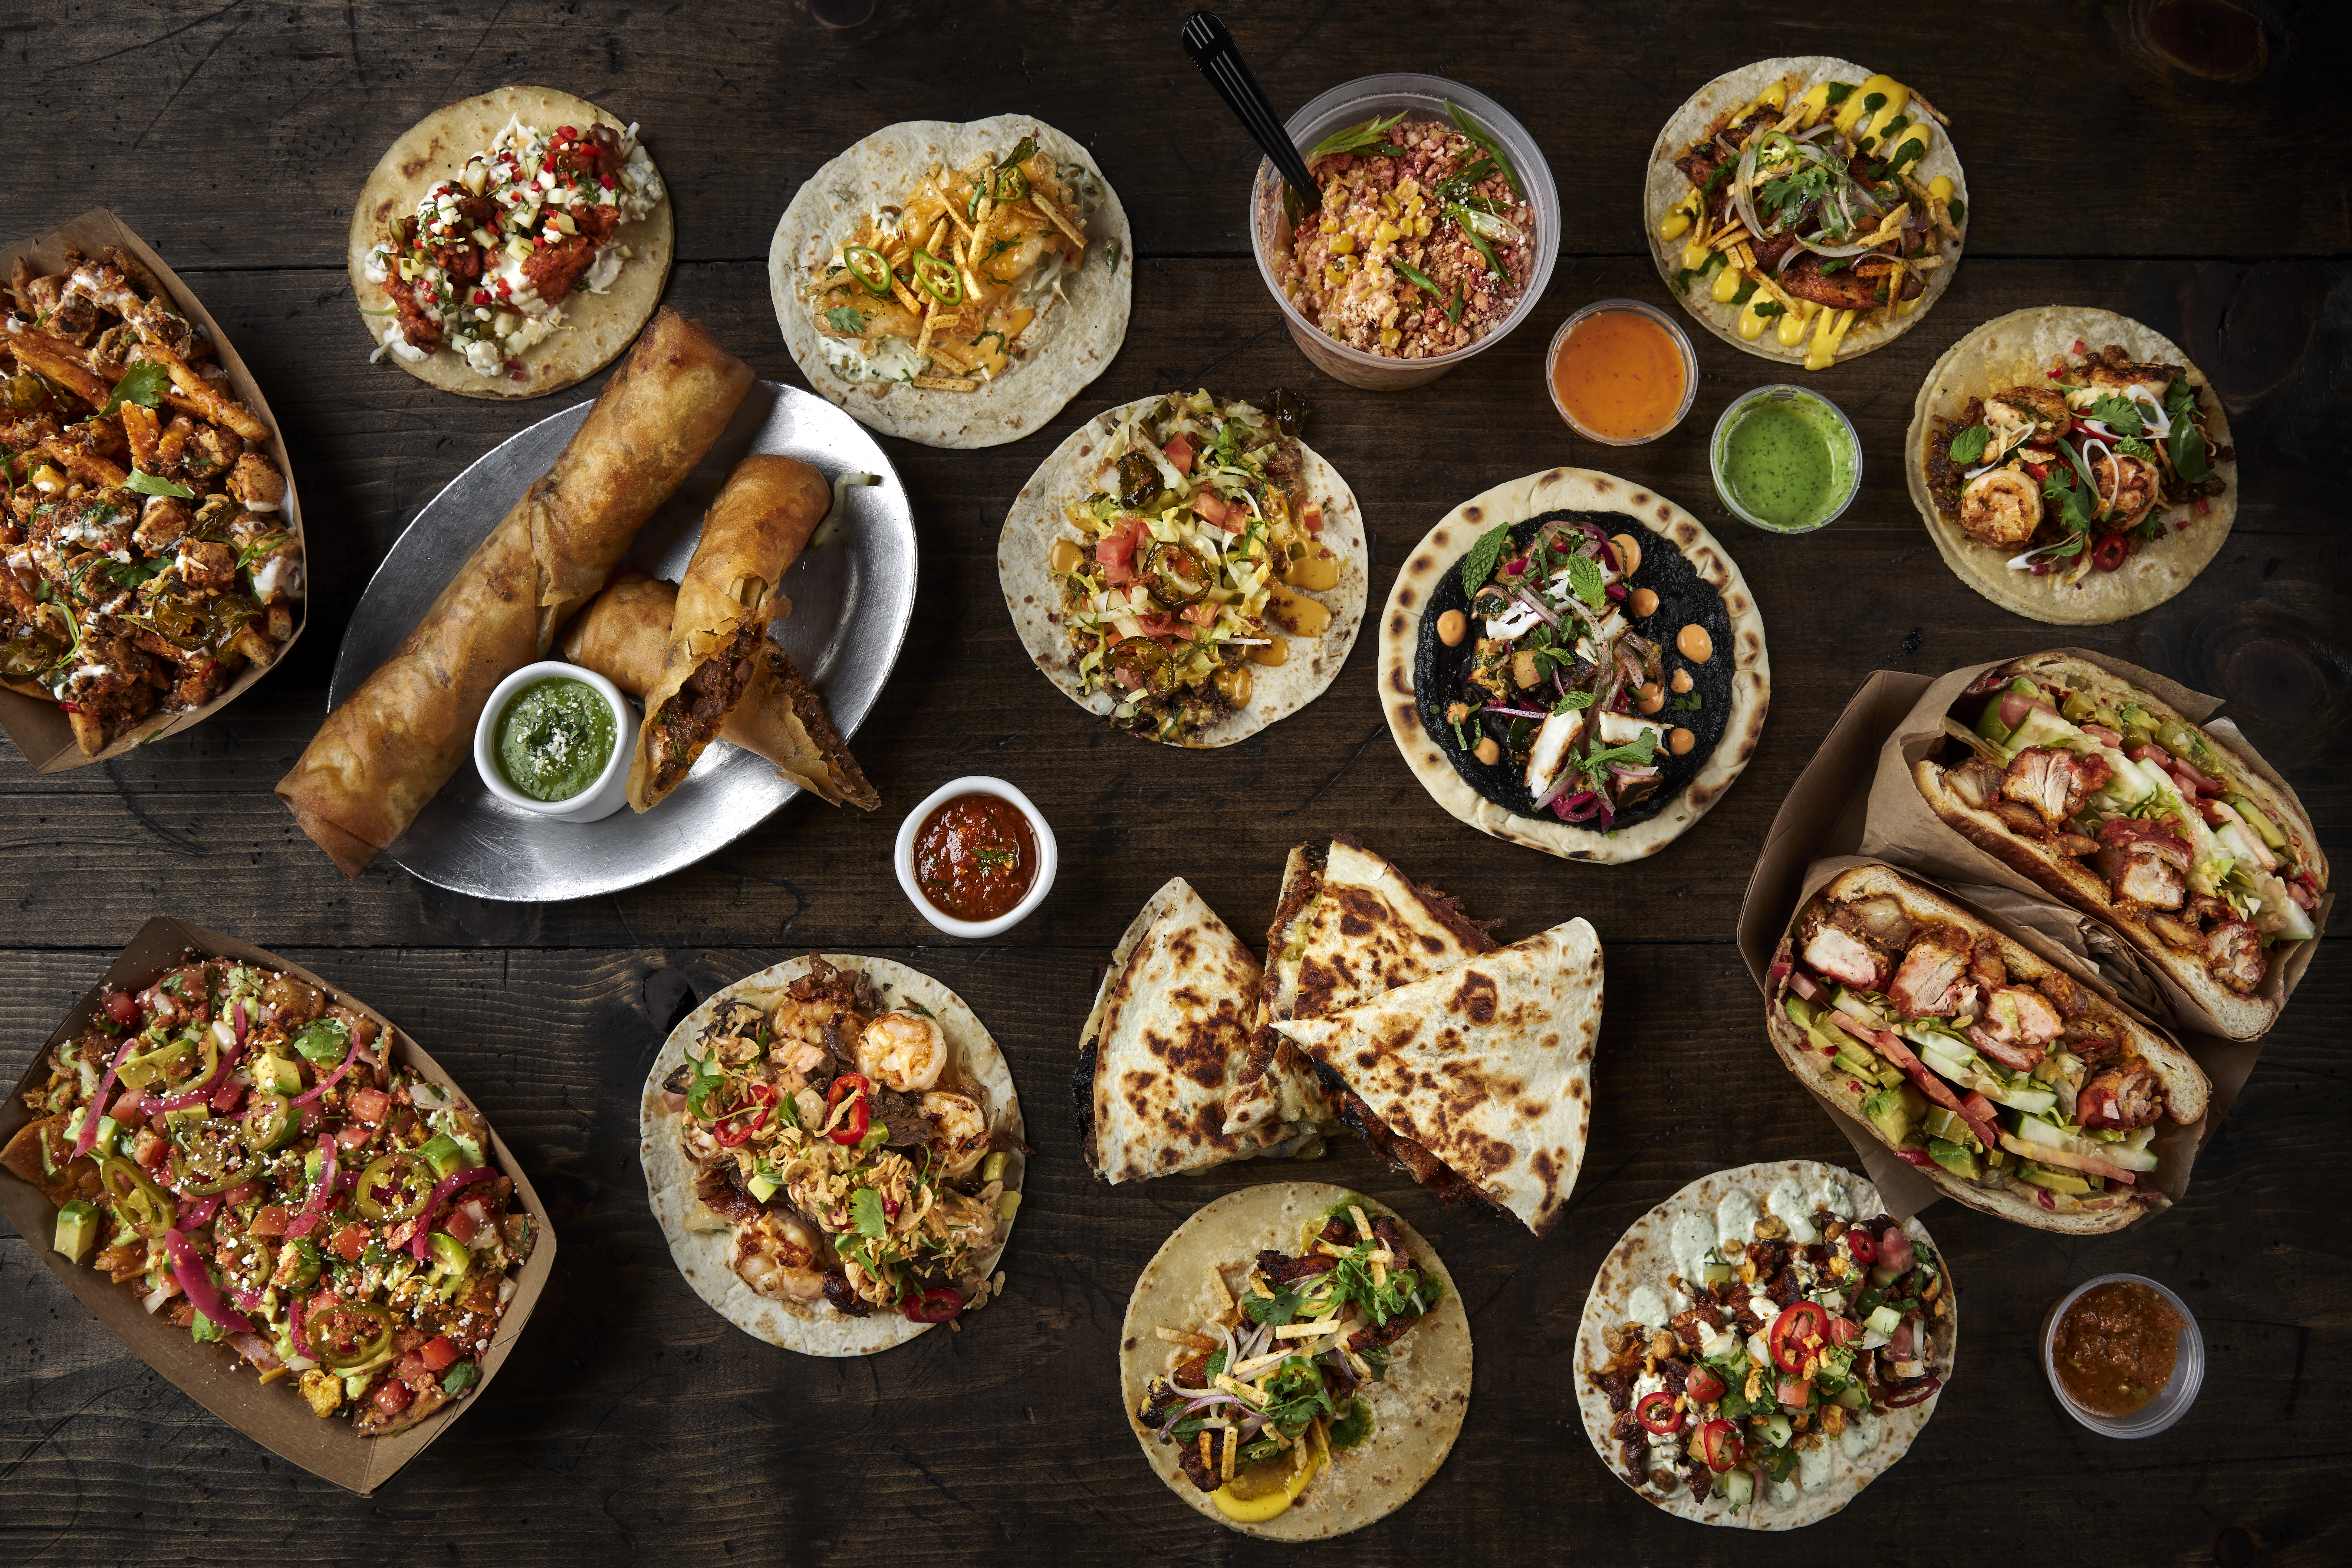 New dishes from Taco Bamba in Ballston